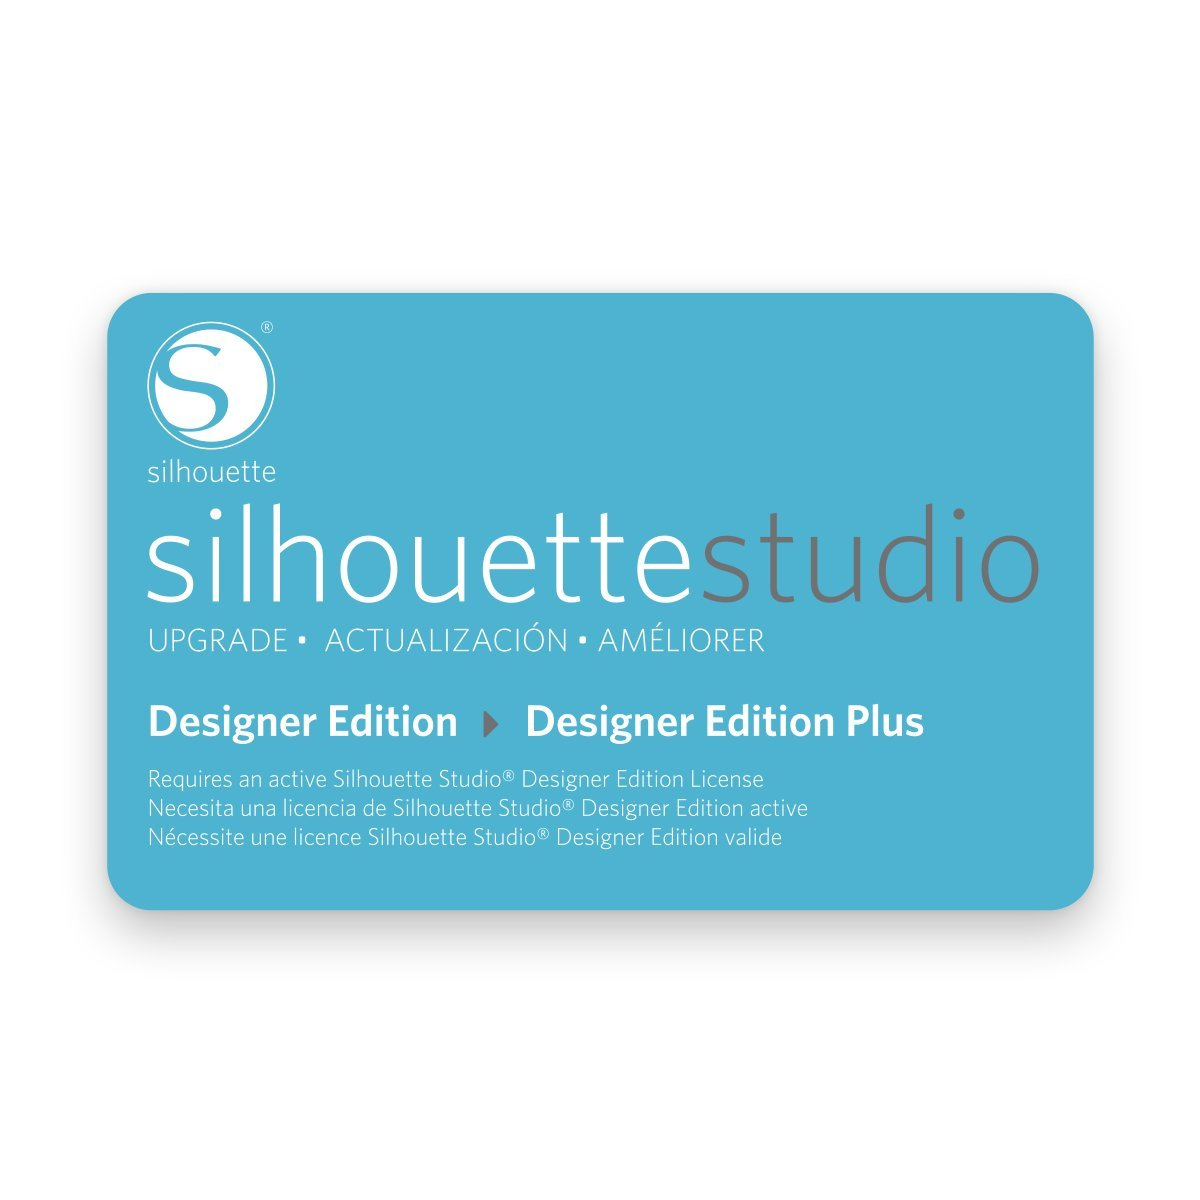 Silhouette Studio Designer Edition to Designer Edition PLUS